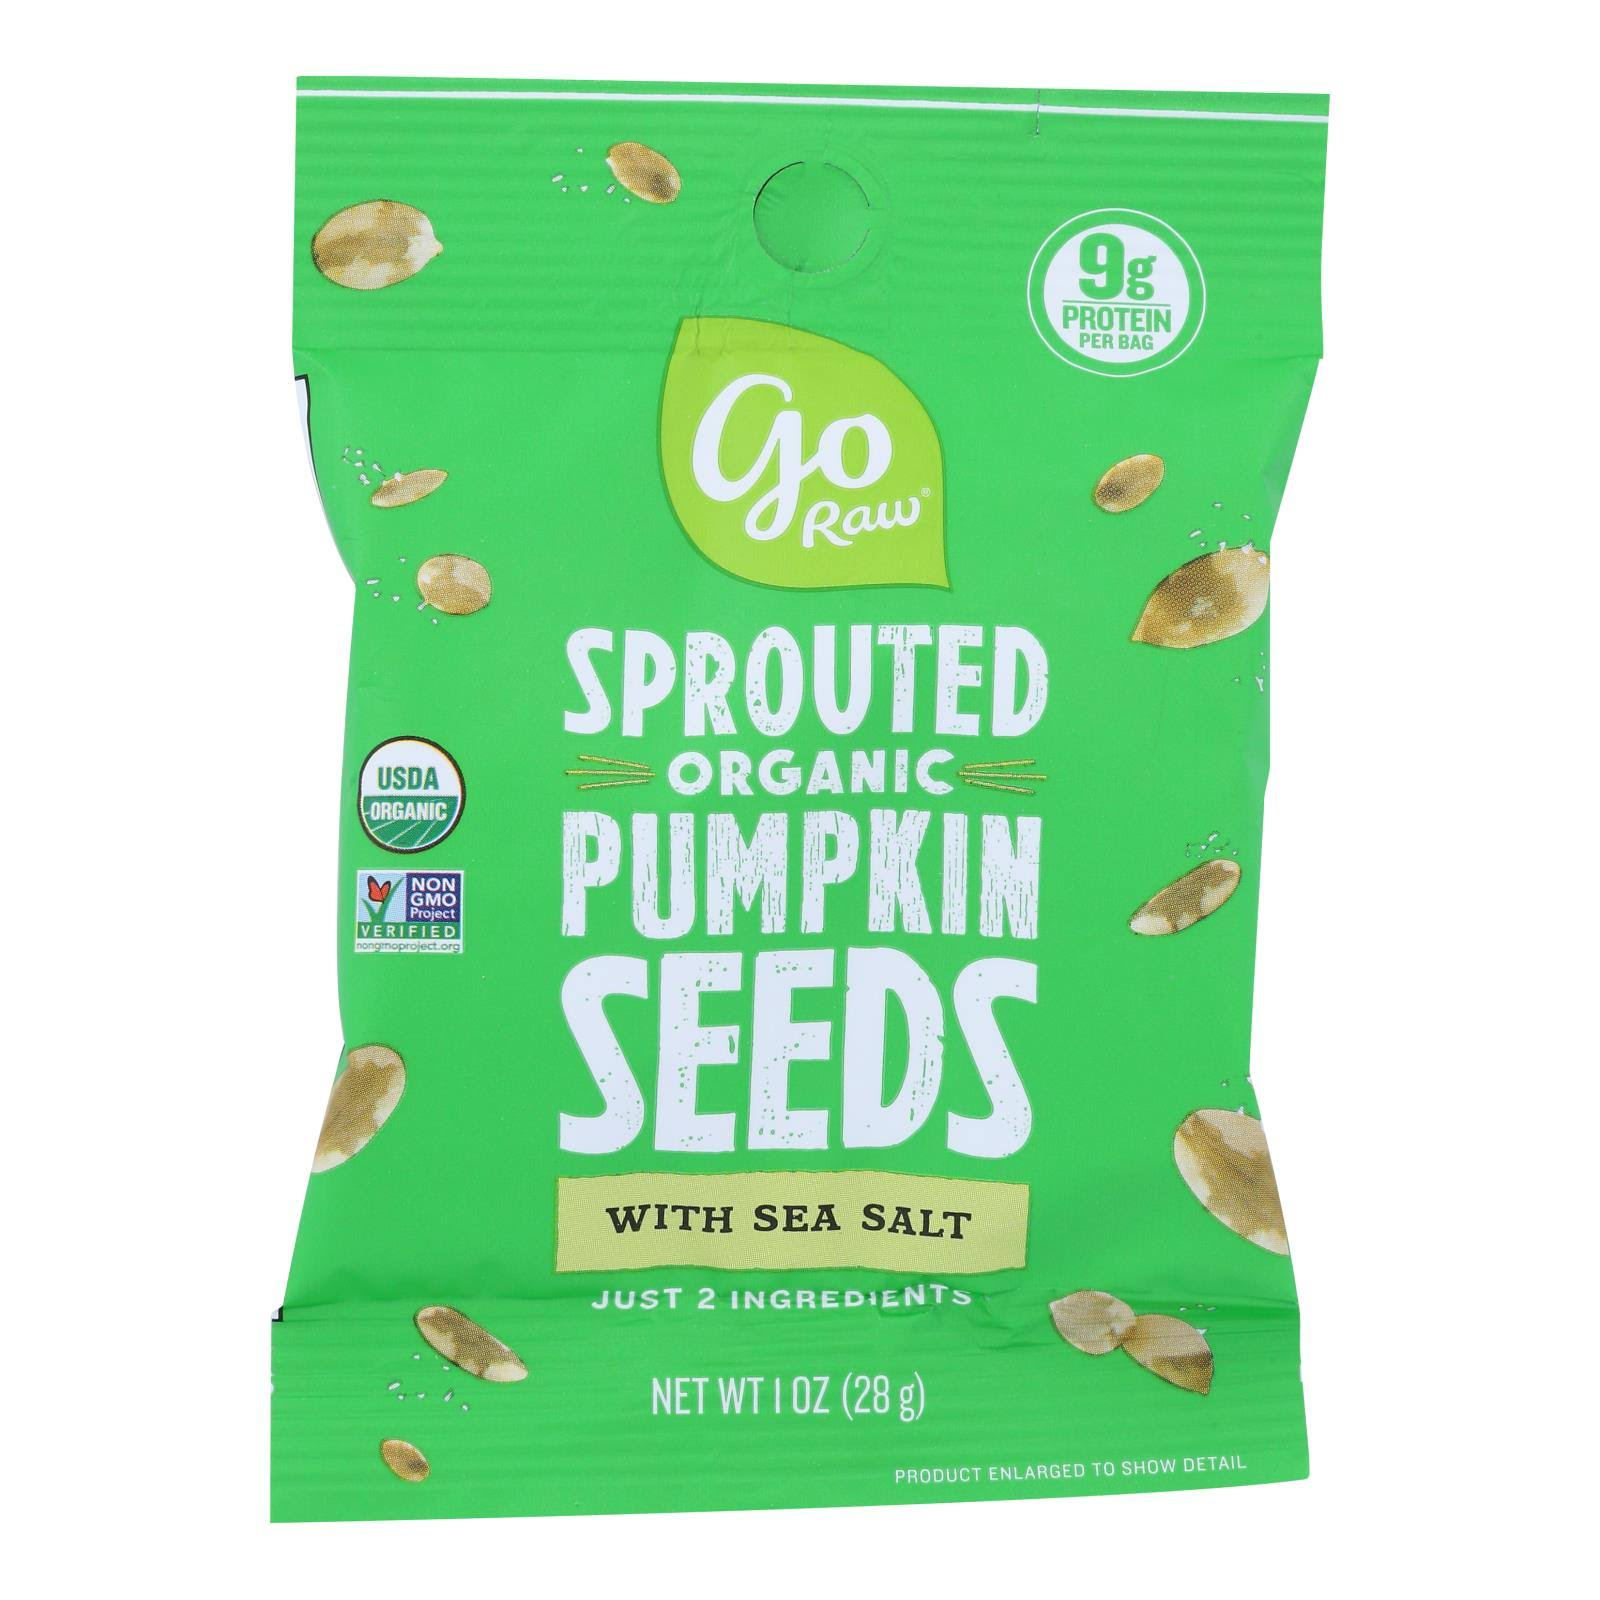 Go Raw - Seed Pumpkin Sea Salt Sprtd - Case of 12 - 1 oz